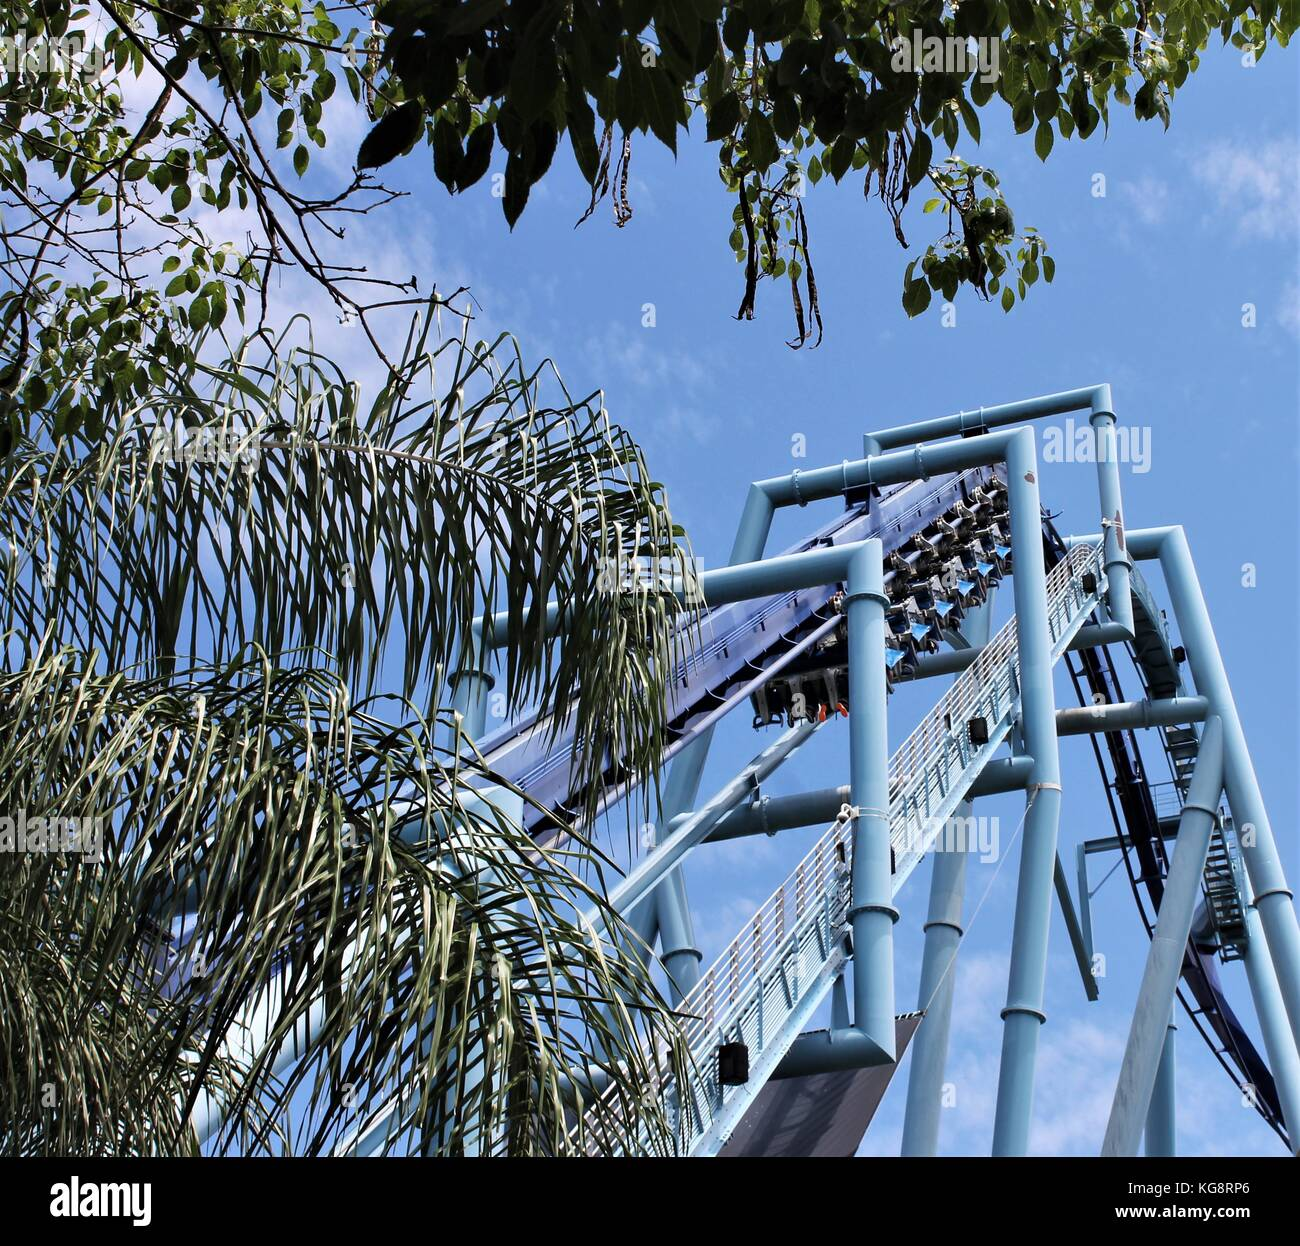 Looking up through the branches of a palm tree at a small section of a blue roller coaster. Only the soles of the - Stock Image